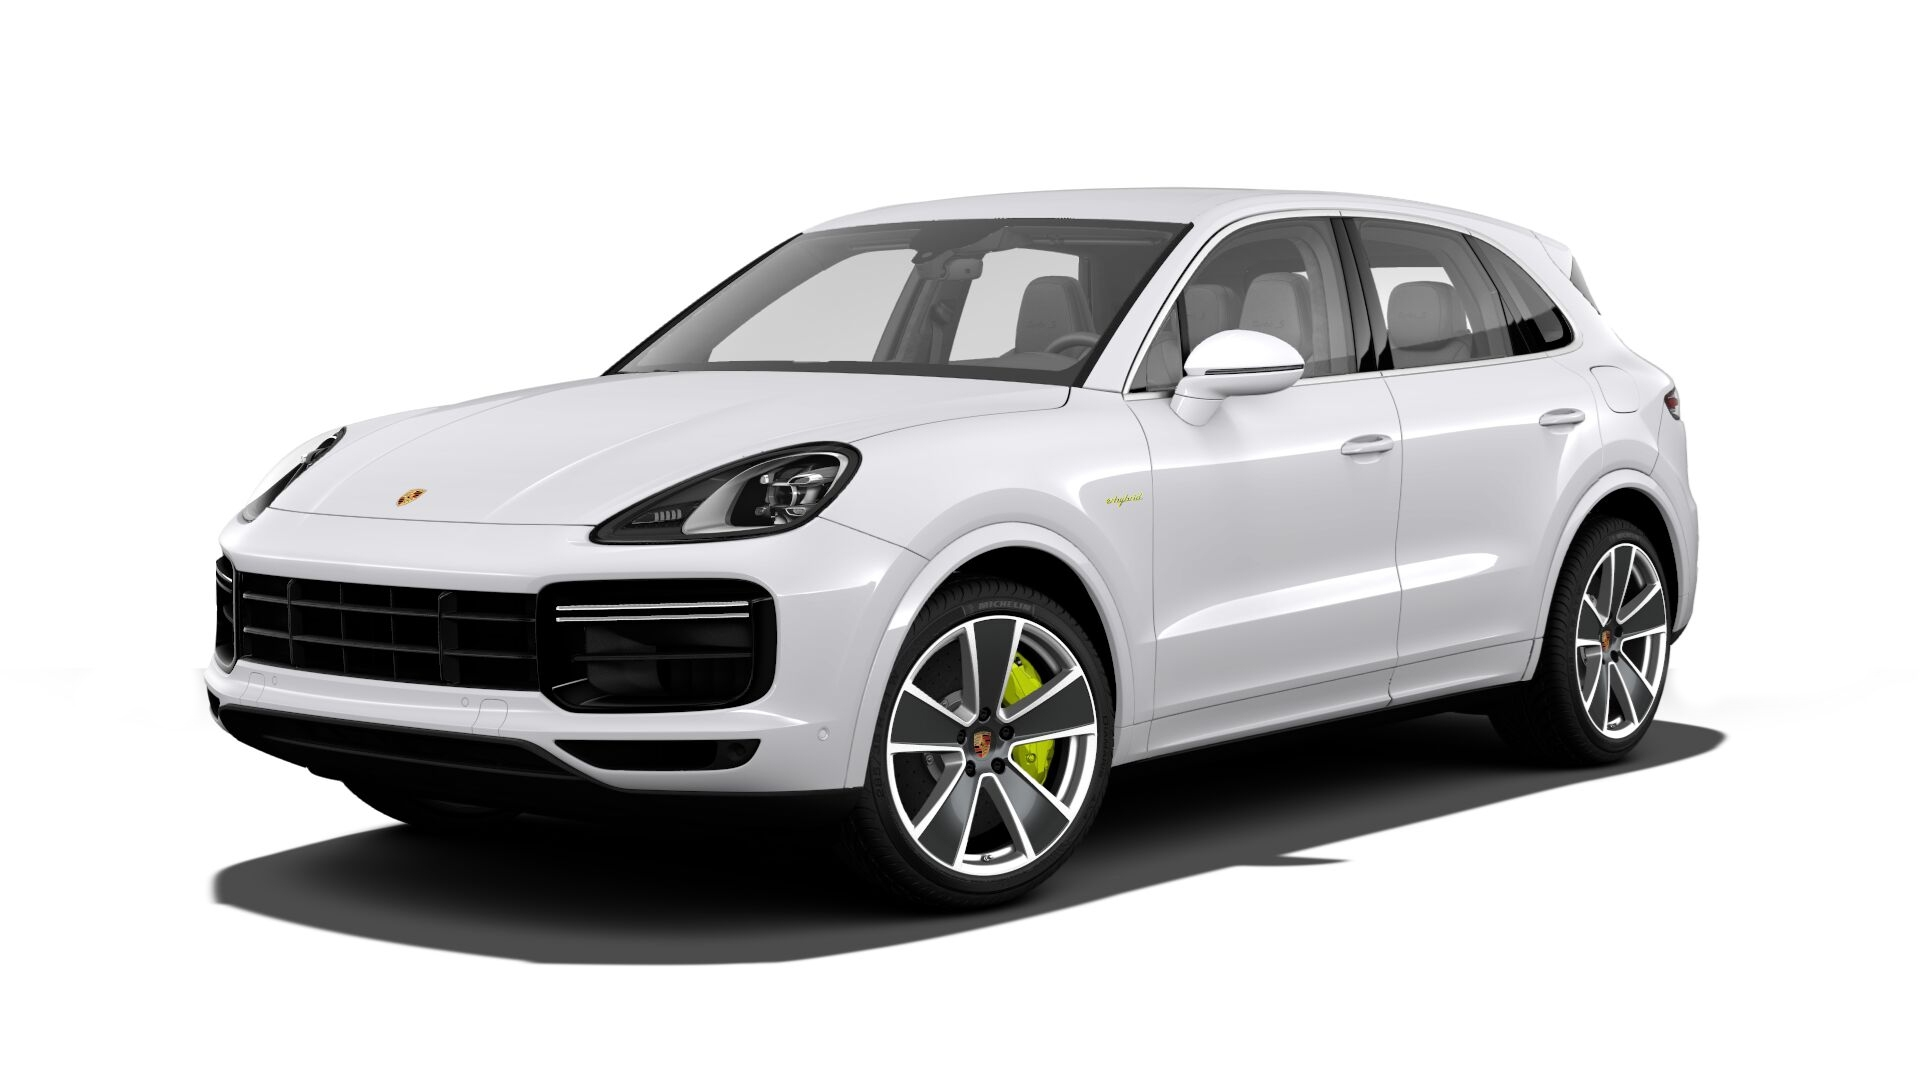 2020 Porsche Cayenne Turbo S E Hybrid Full Specs Features And Price Carbuzz